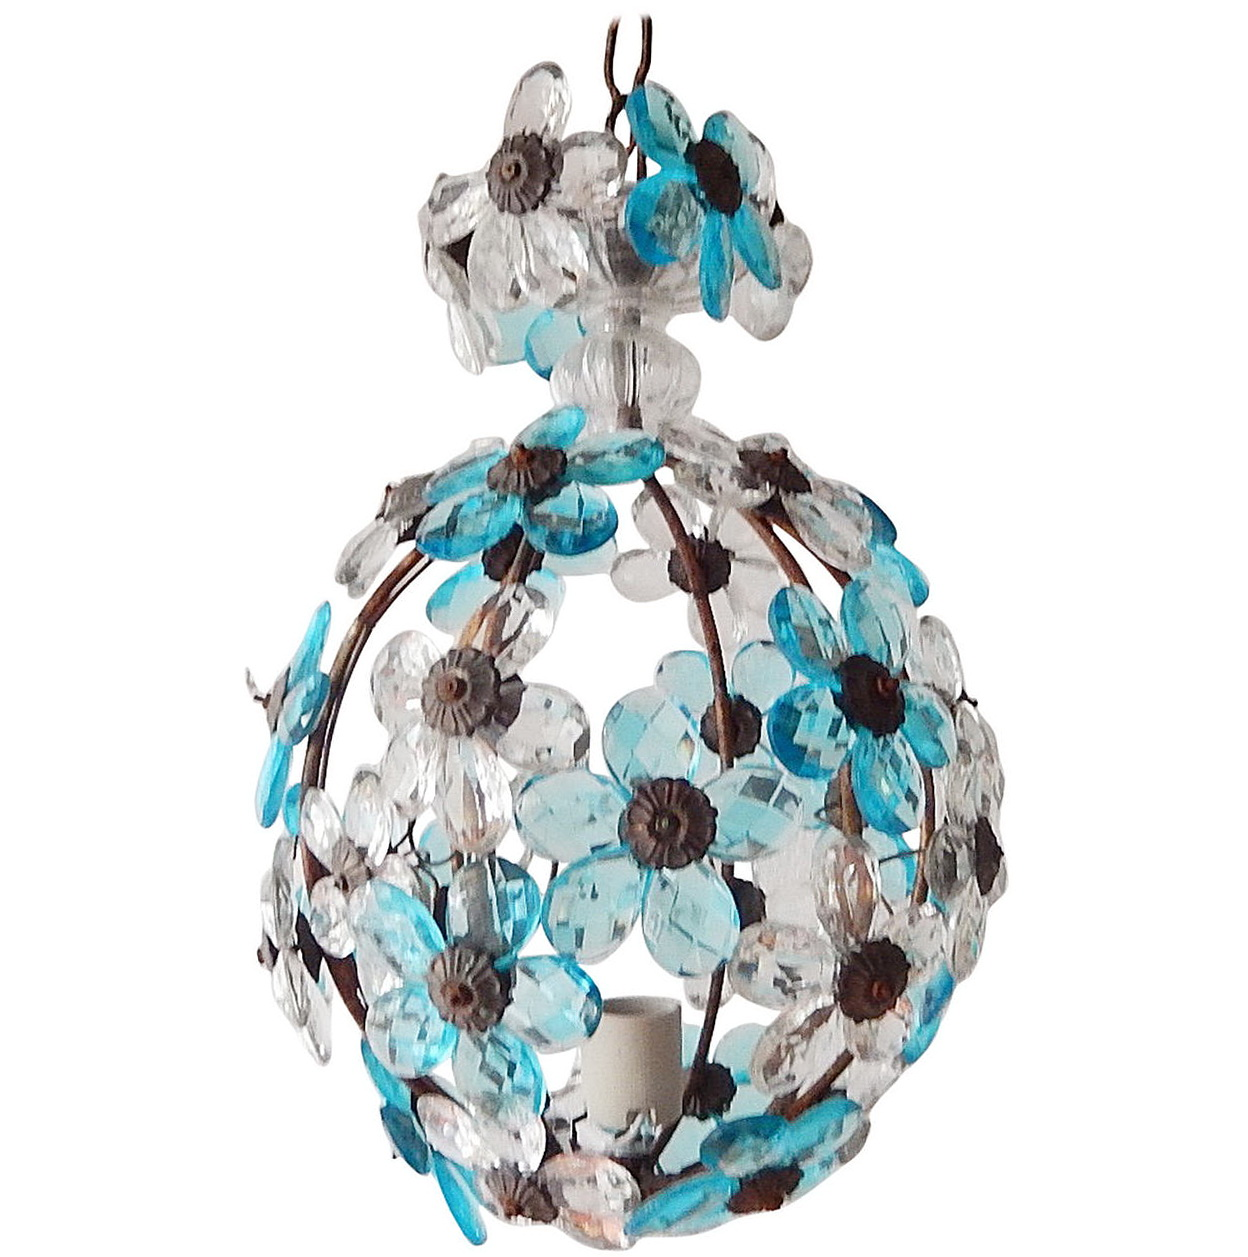 Hanging Crystal Ball Chandelier